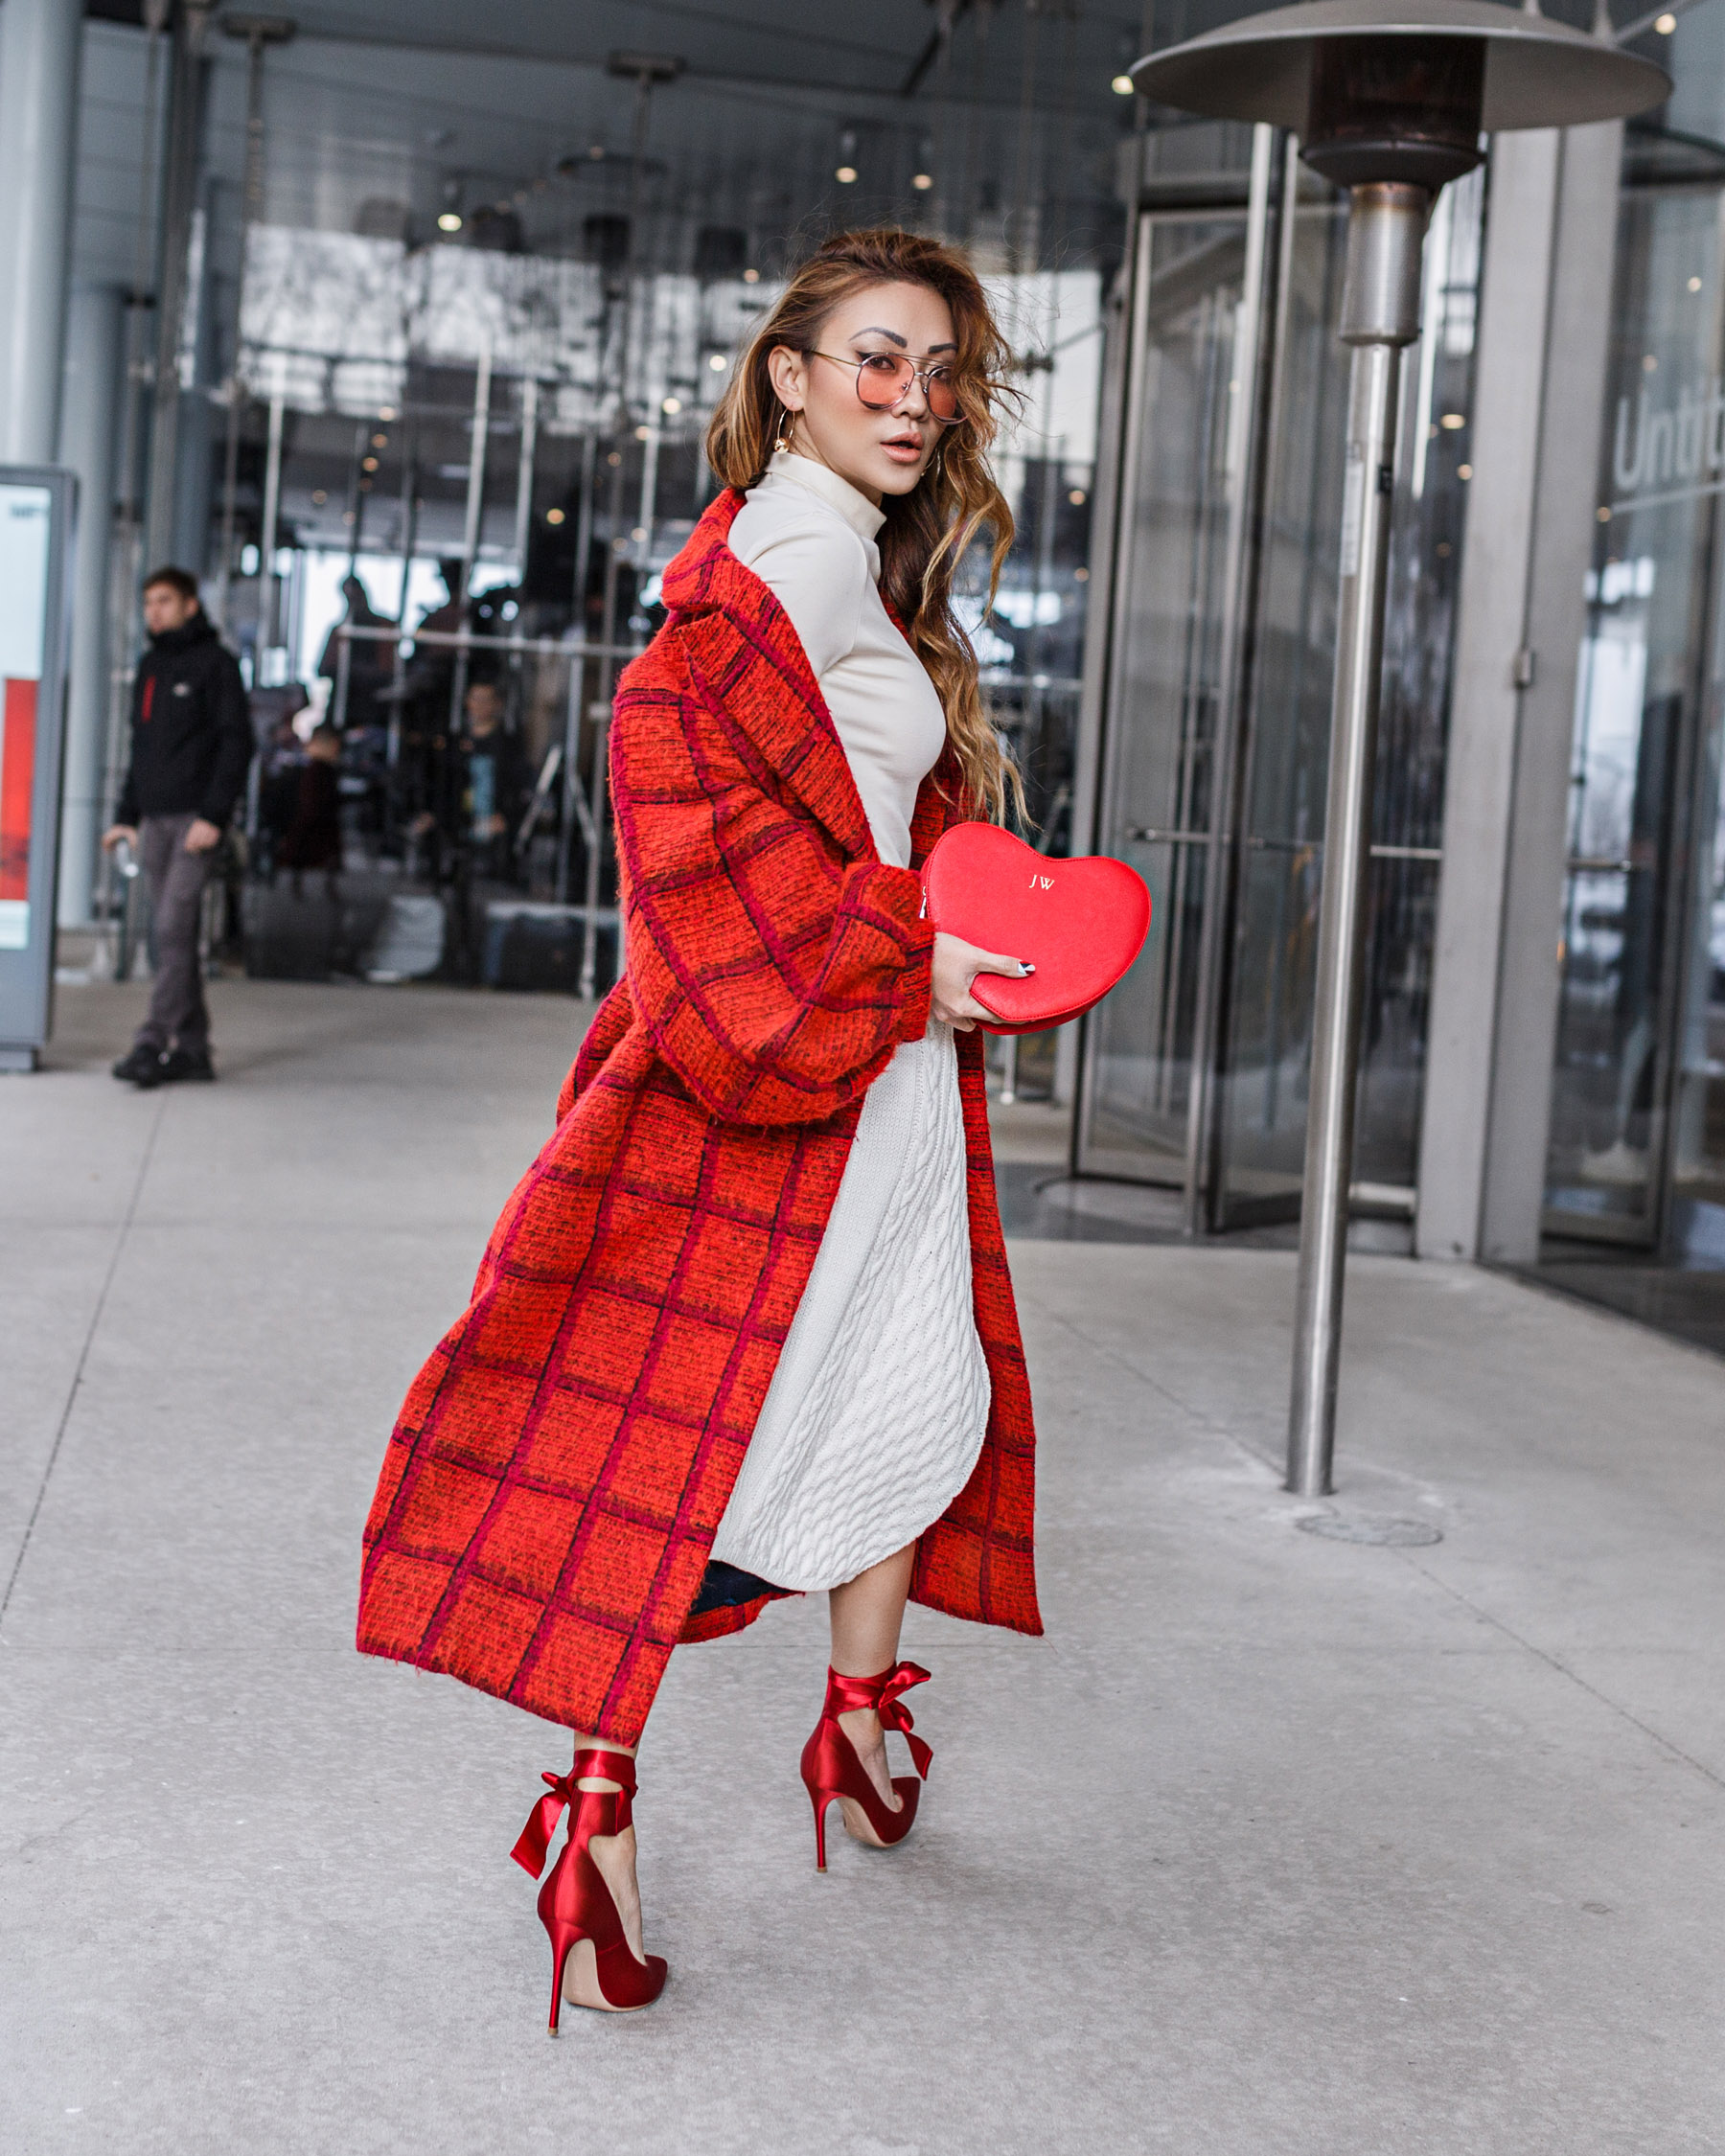 Chic Colorful Coats - Red Plaid Coat - A Valentines Day Look // NotJessFashion.com